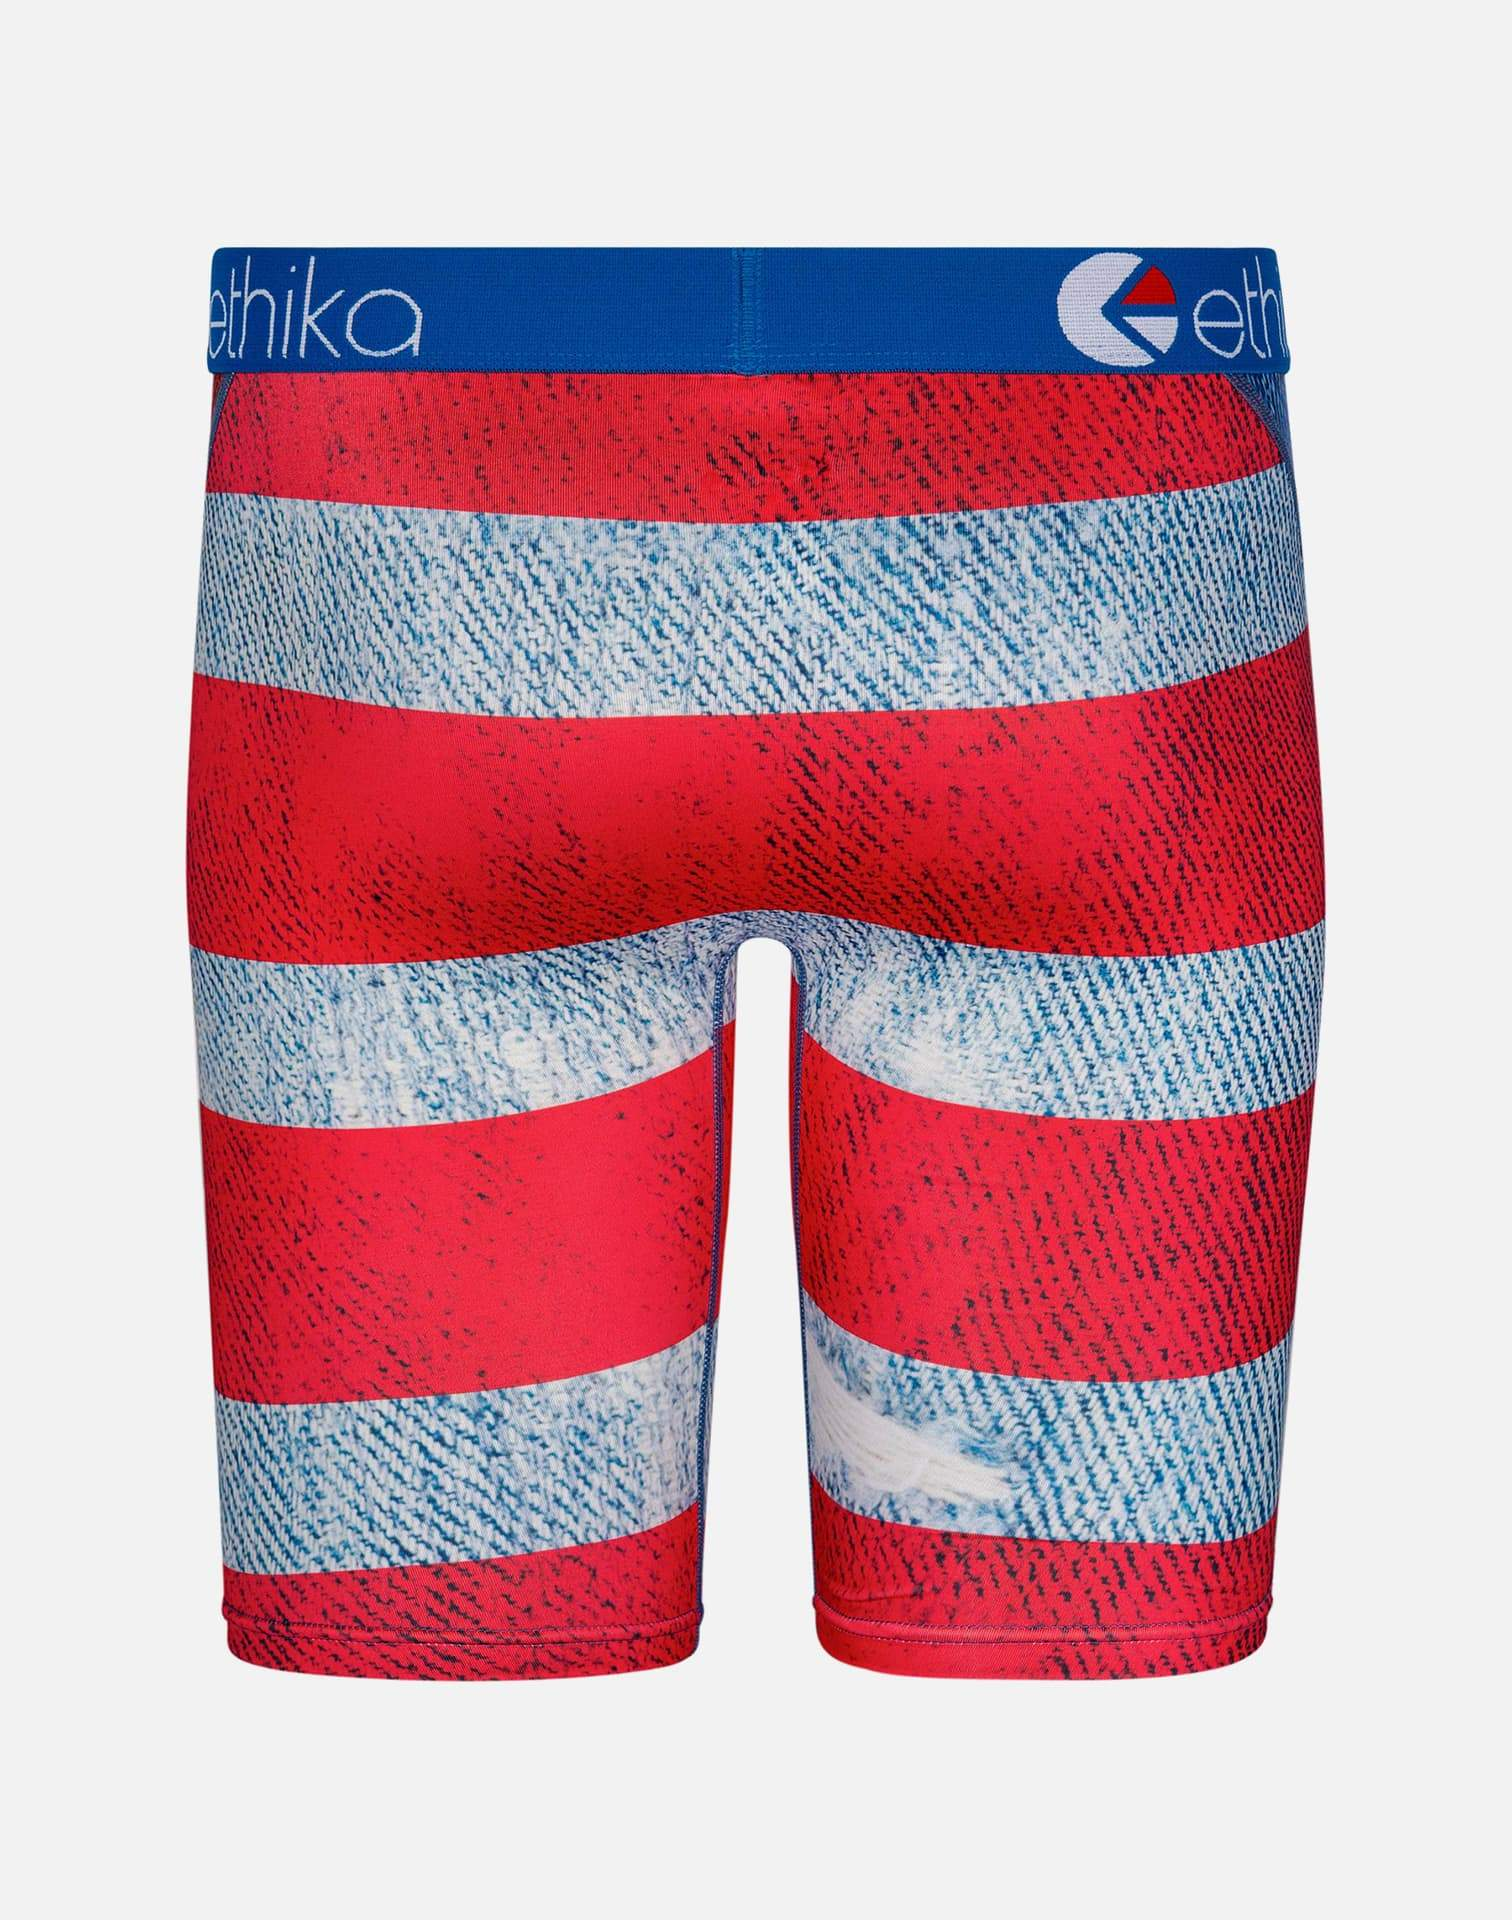 Ethika Men's Denim Flag Boxer Briefs